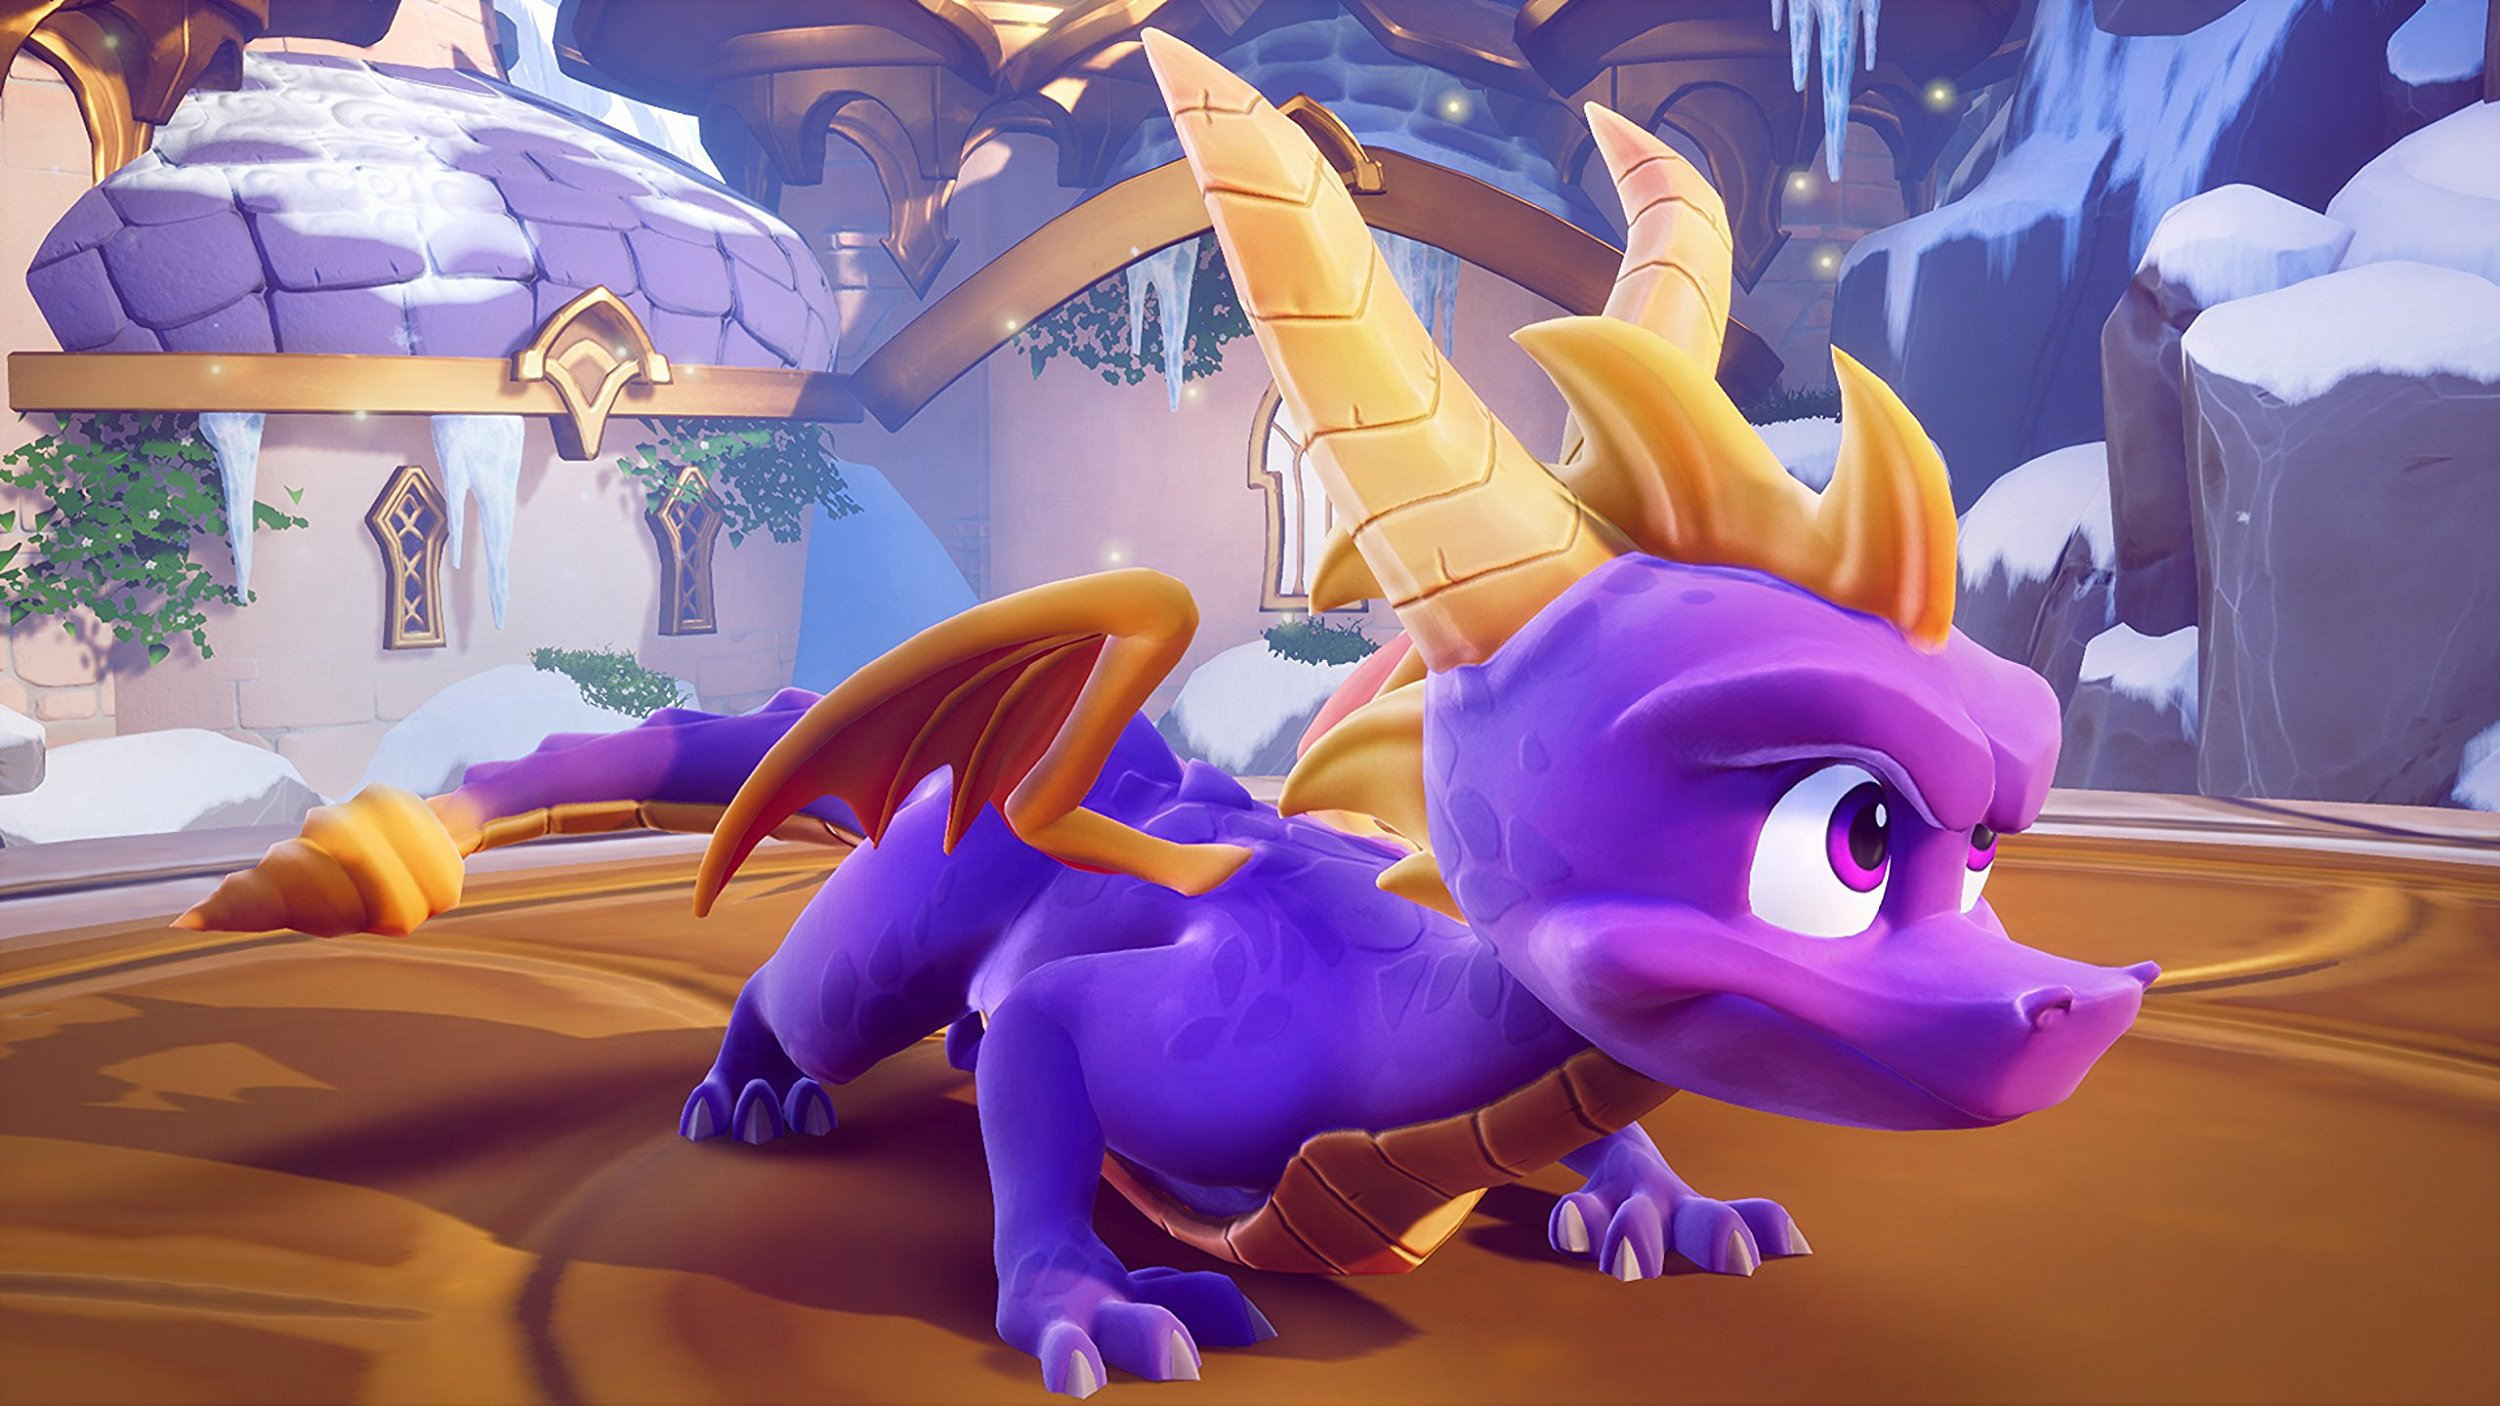 E3 2018: Nuevo gameplay de Spyro Reignited Trilogy